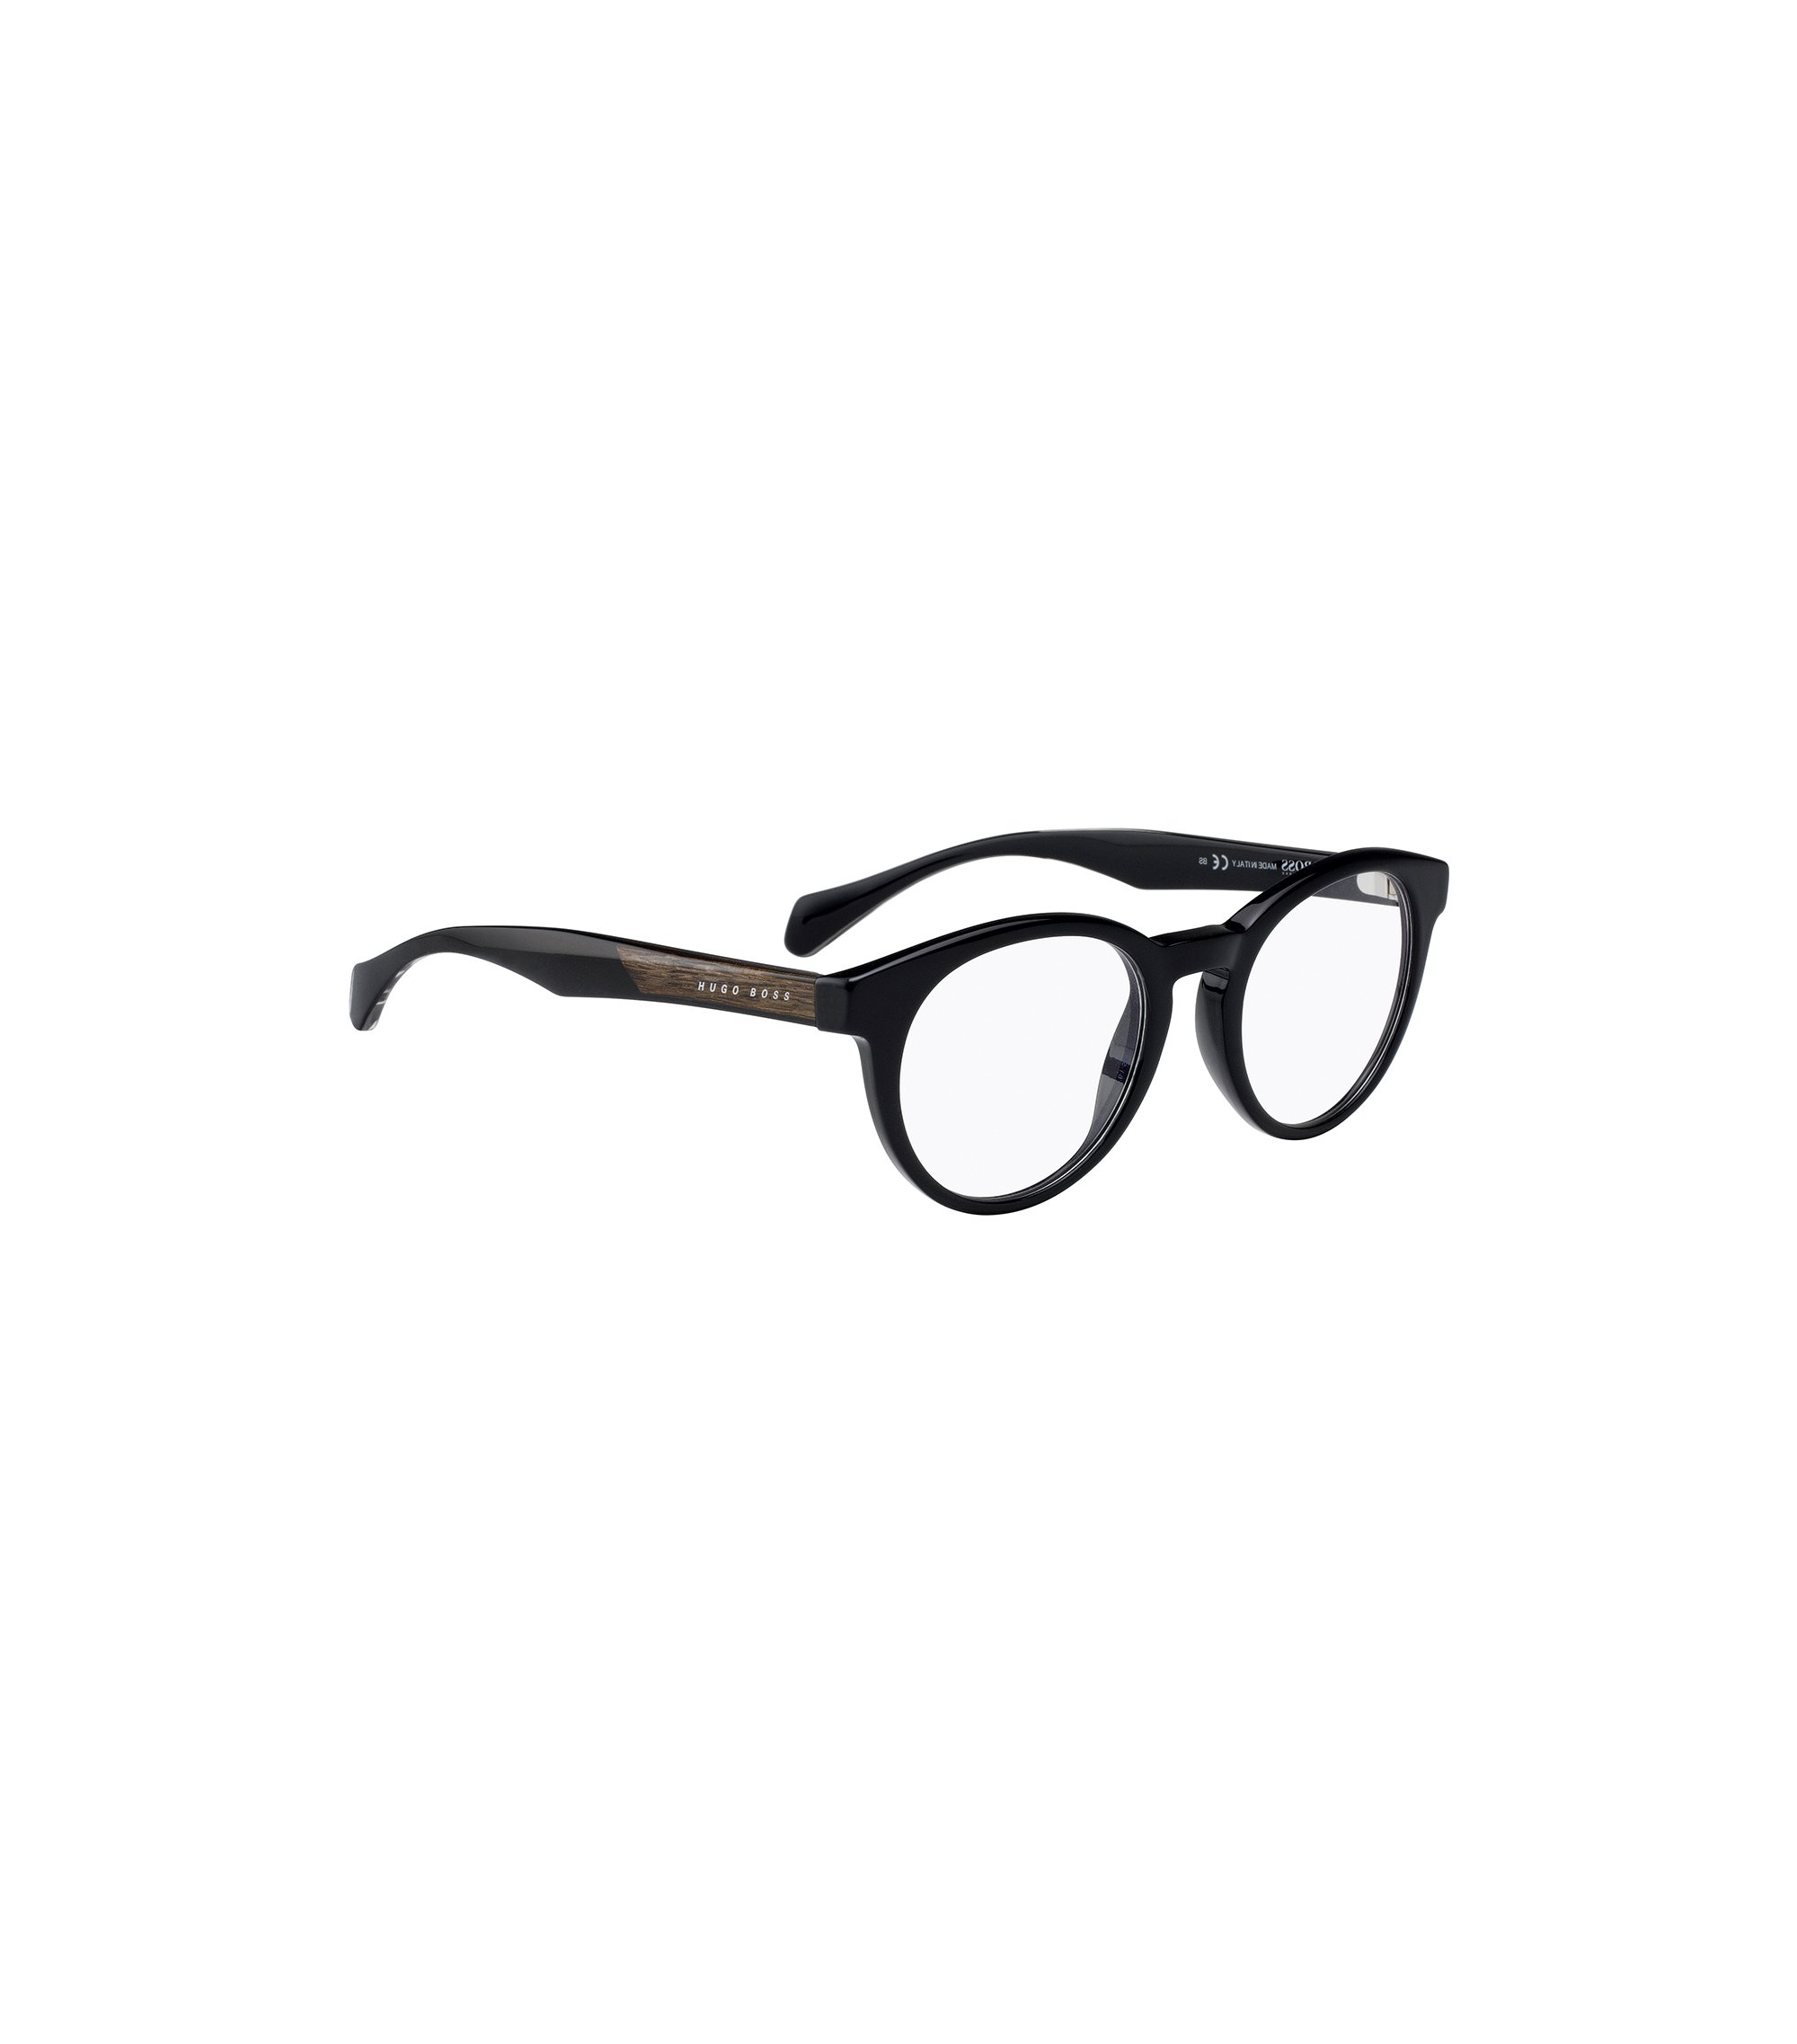 'BOSS 0913 1YS' | Black Acetate Round Optical Frames, Assorted-Pre-Pack